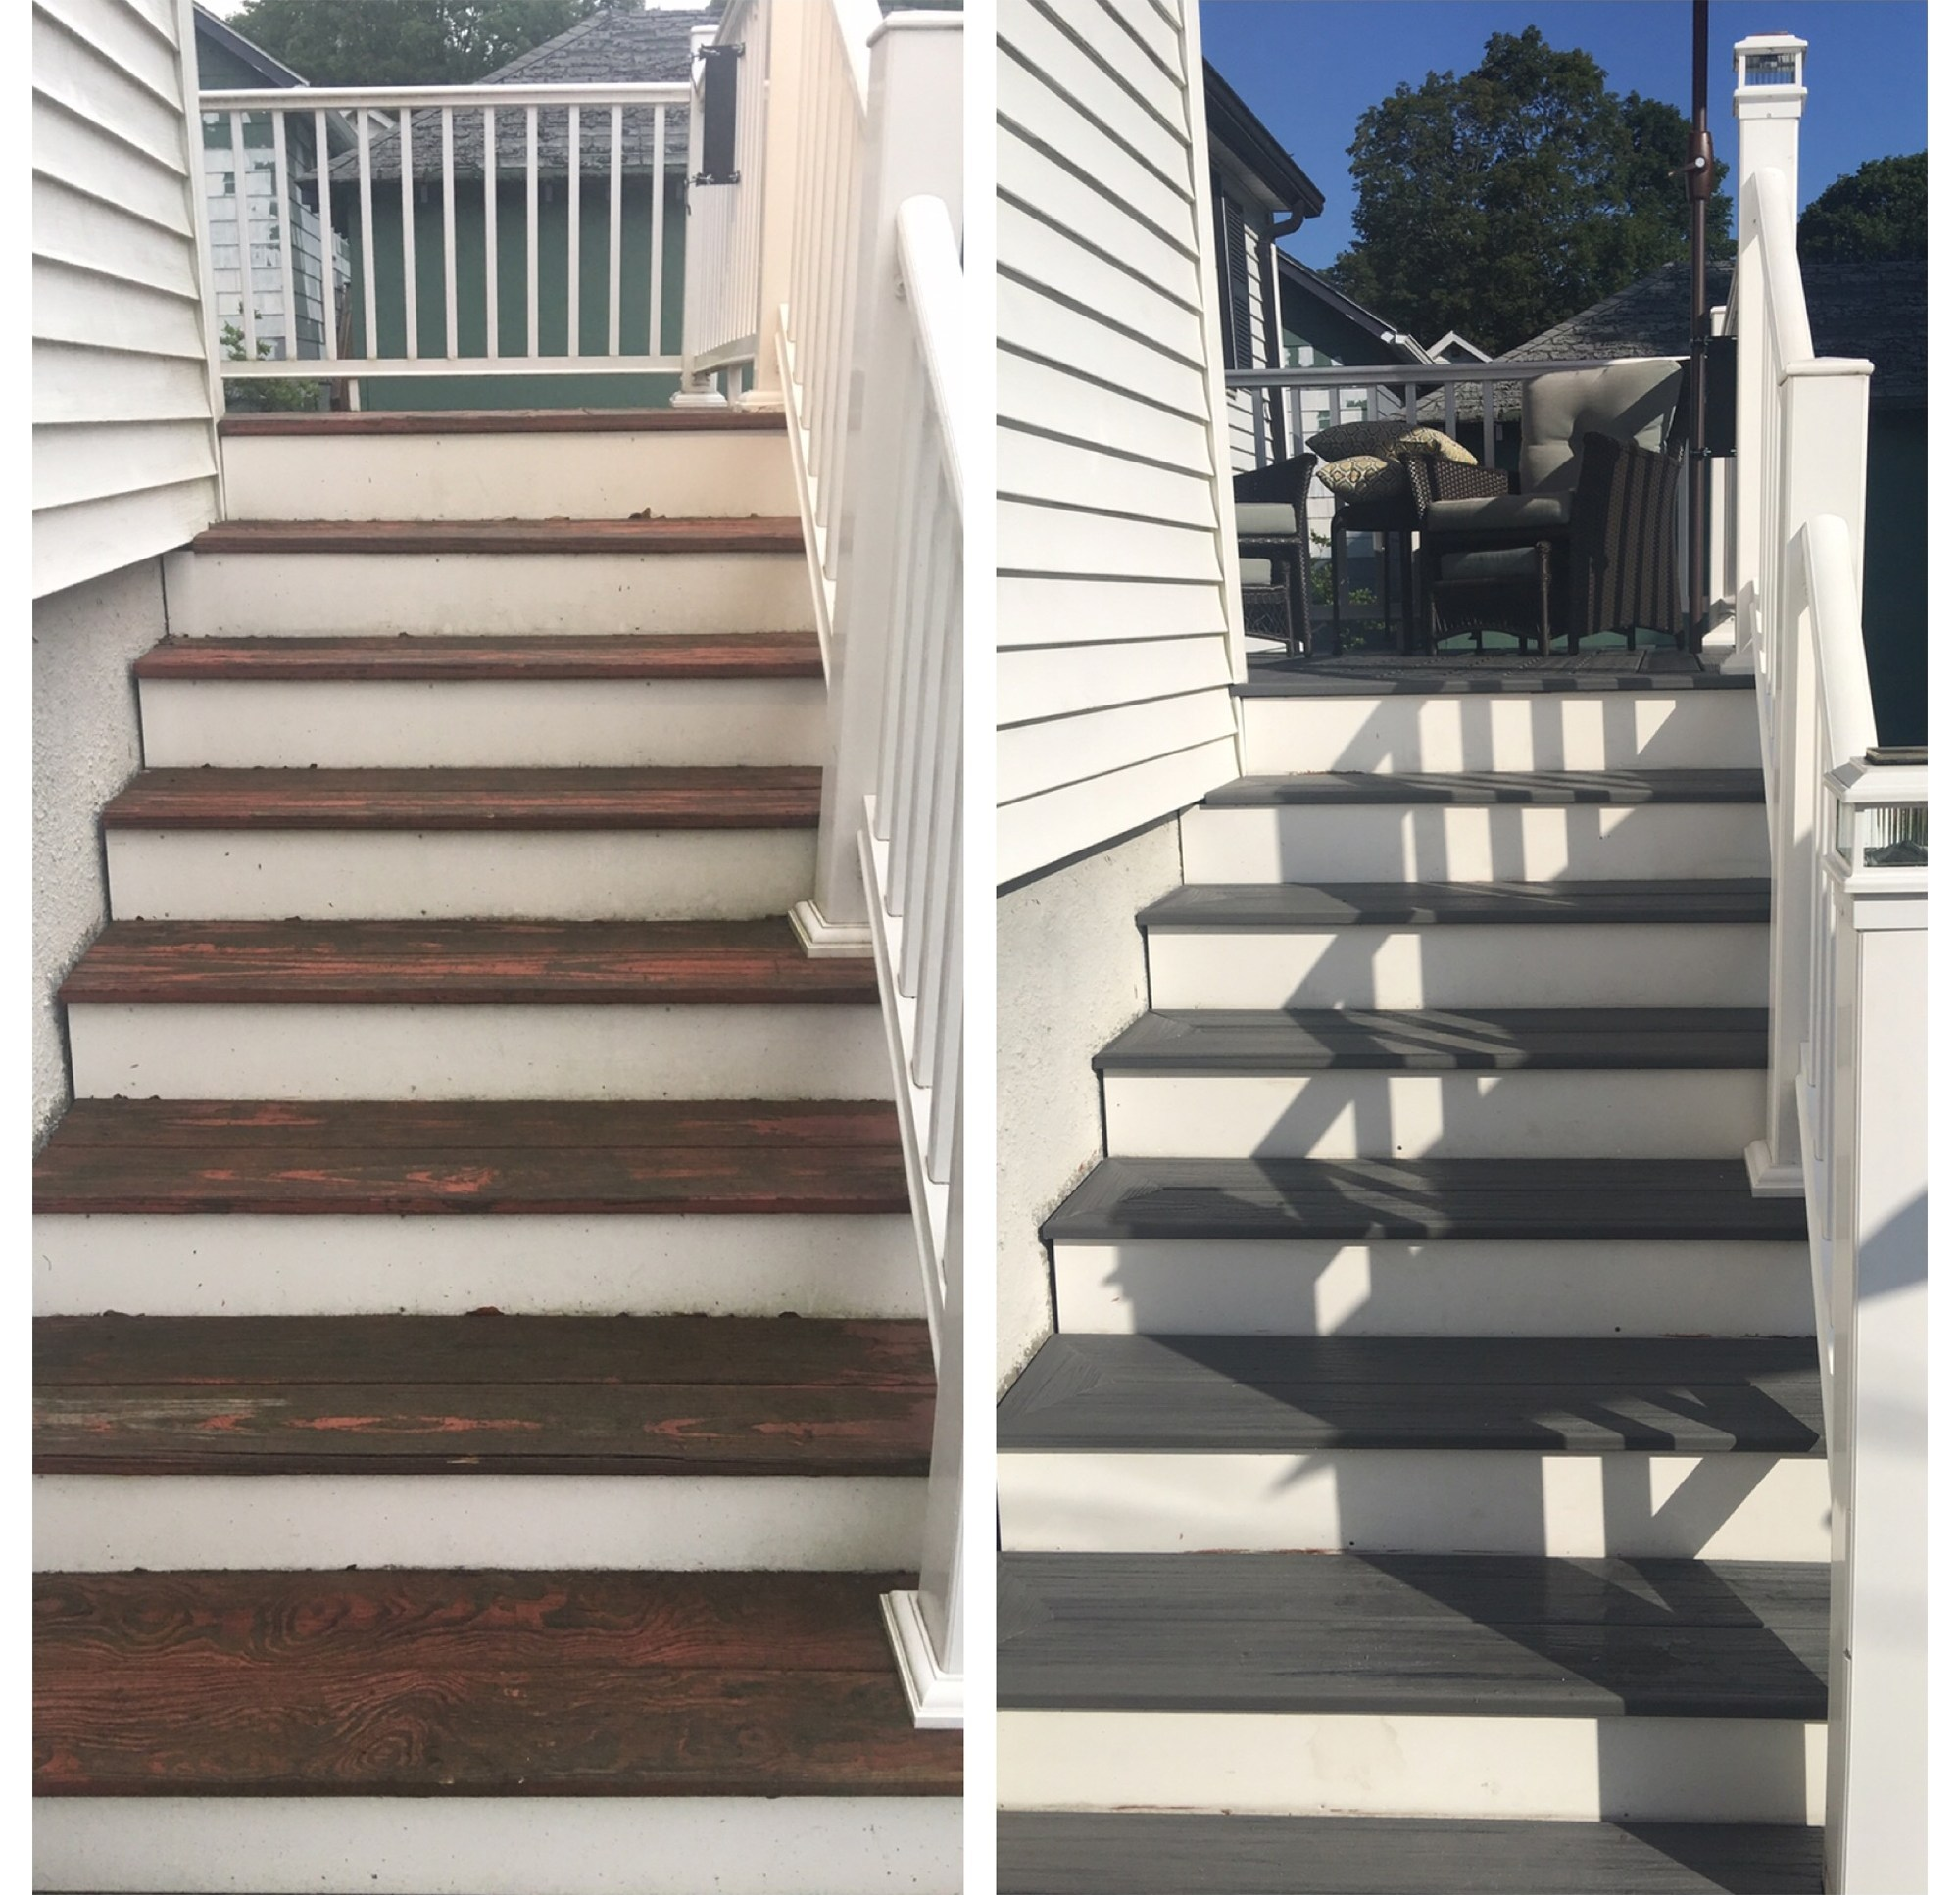 Better Deck Stair Detail Jlc Online | Best Wood For Outdoor Stairs | Deck Railing | Stair Stringer | Handrail | Staircase | Railing